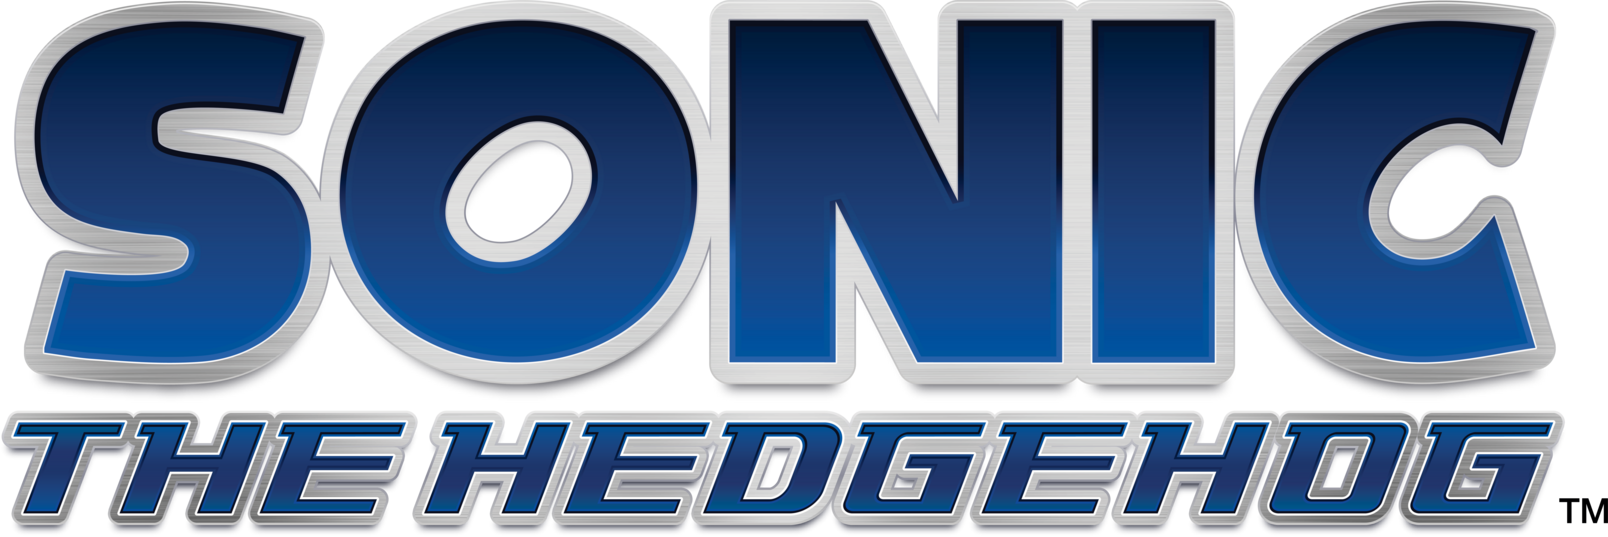 File:Sonic The Hedgehog logo (2006).png.